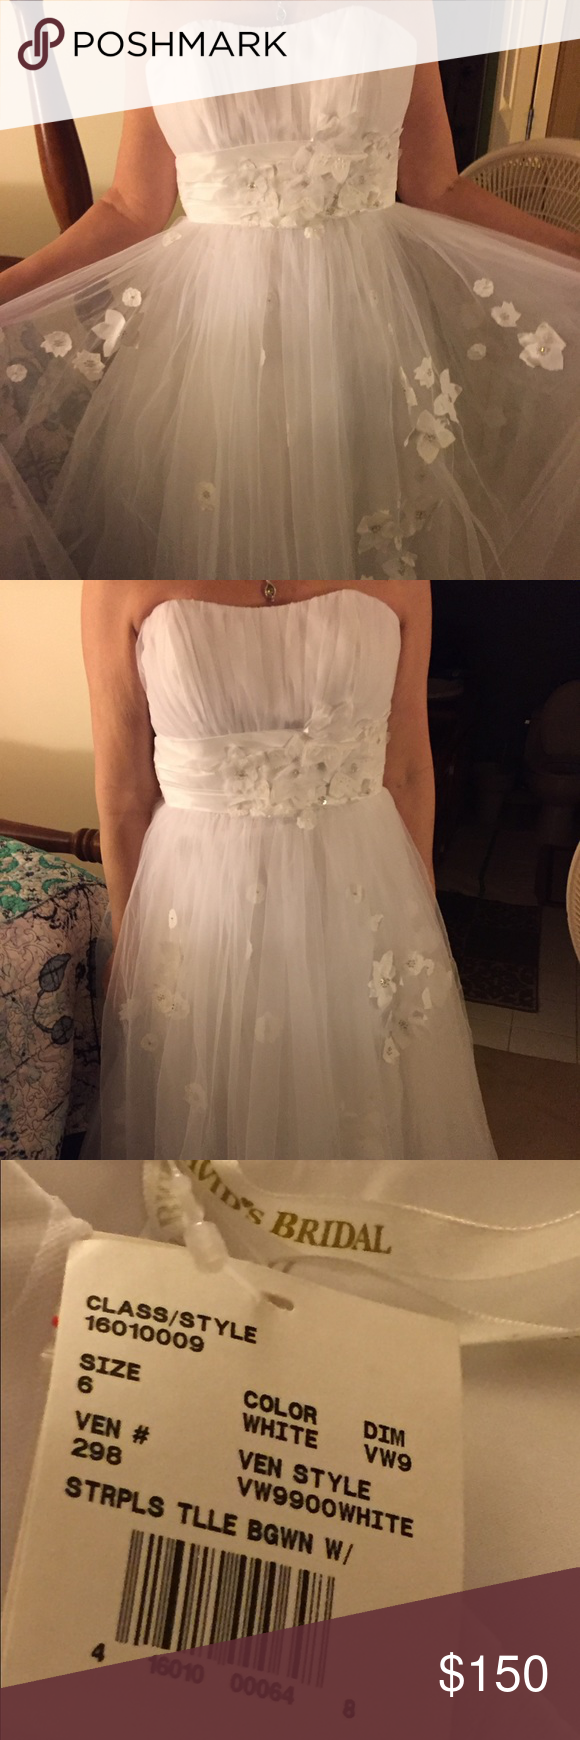 Size 6 wedding dress  White wedding dress new with tags size   Wedding dress brands